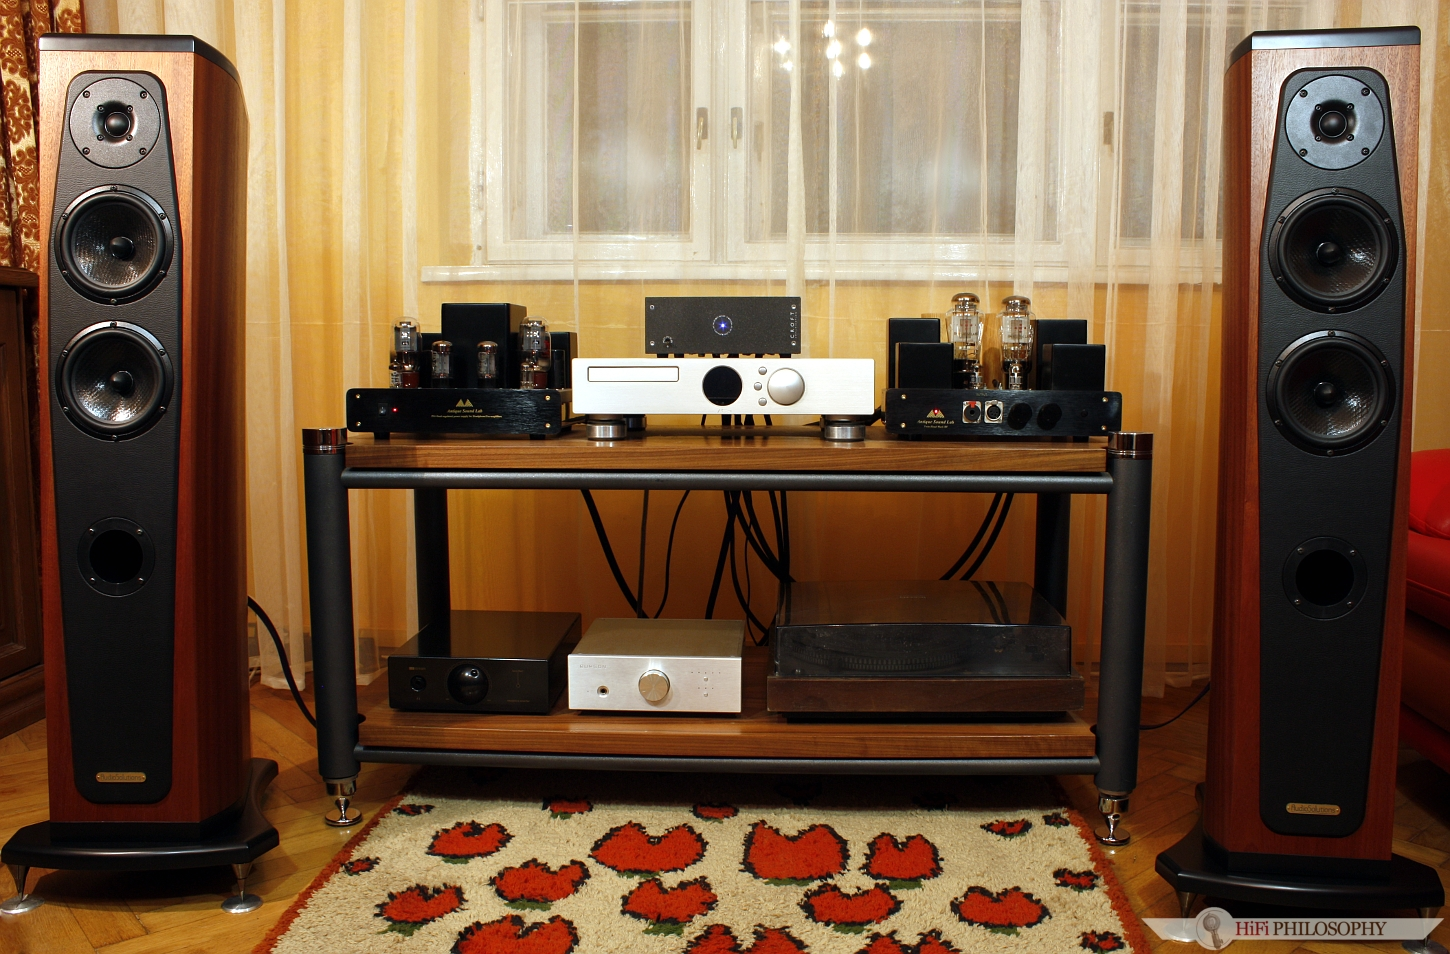 Rhapsody 80 review by hifi philosophy